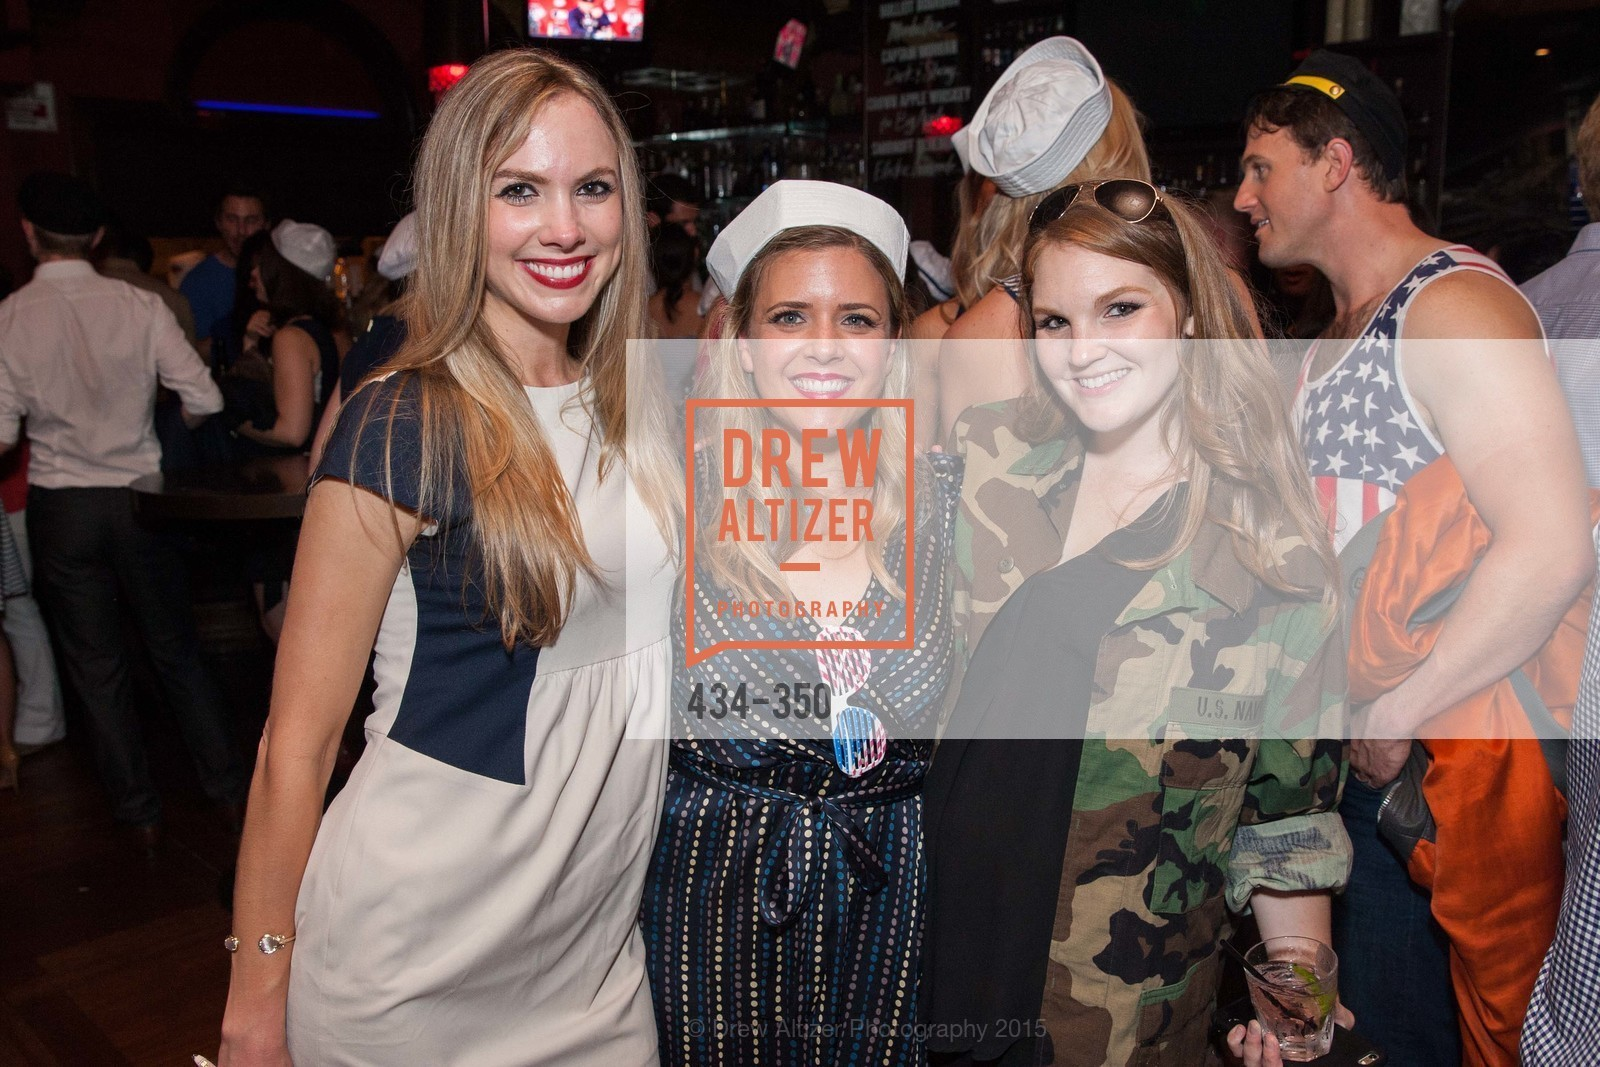 Michelle Bertino, Melissa Stoller, Jamie Taylor, Spinsters of San Francisco Presents: Fleet or Flight, Mayes Oyster House. 1233 Polk St, October 9th, 2015,Drew Altizer, Drew Altizer Photography, full-service agency, private events, San Francisco photographer, photographer california